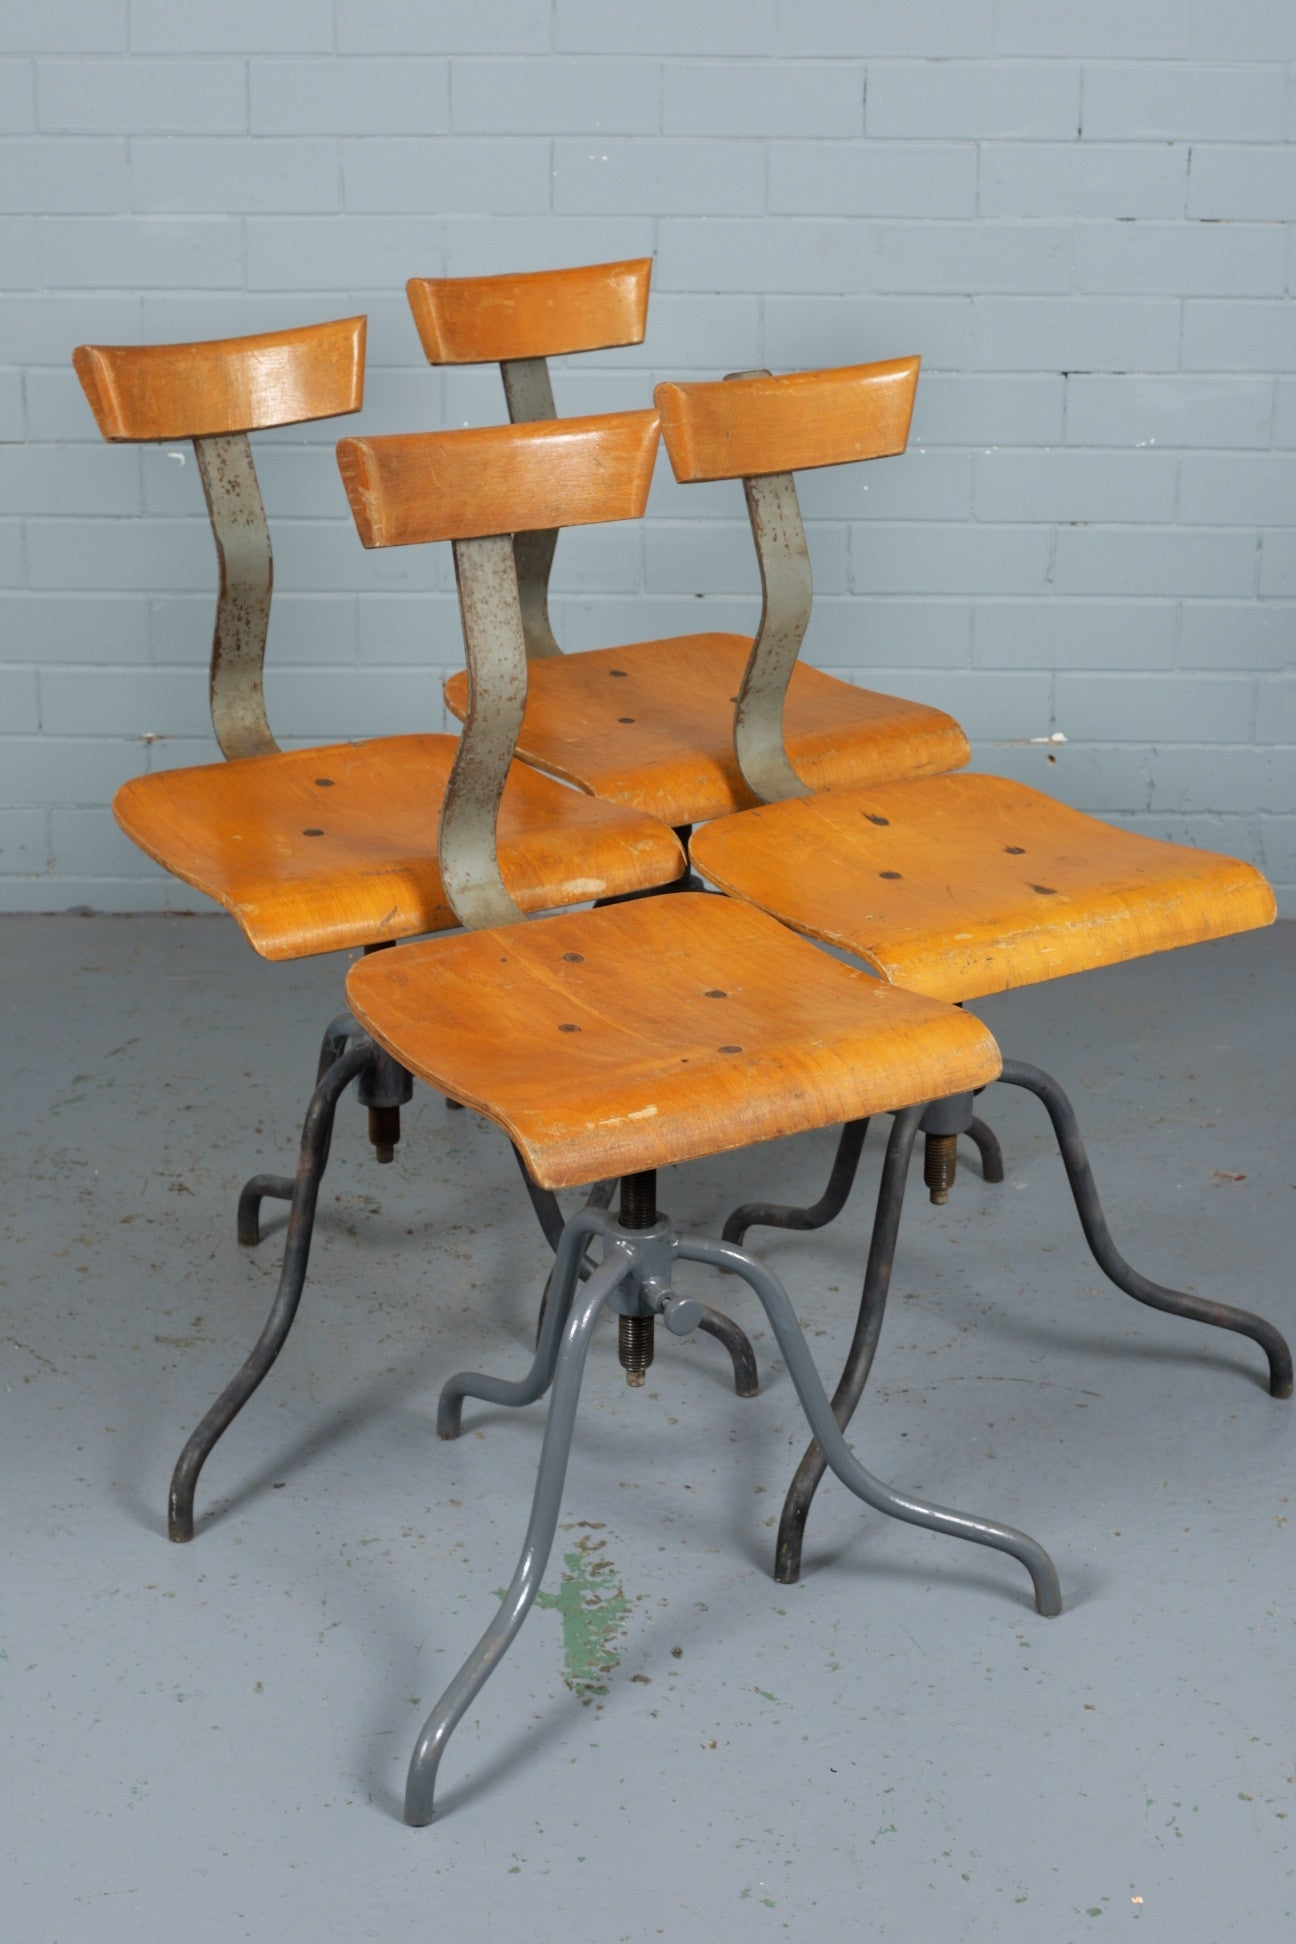 European wooden work chairs available to buy at Industrious Interiors, an online vintage furniture and homeware store based in Nottingham, England.